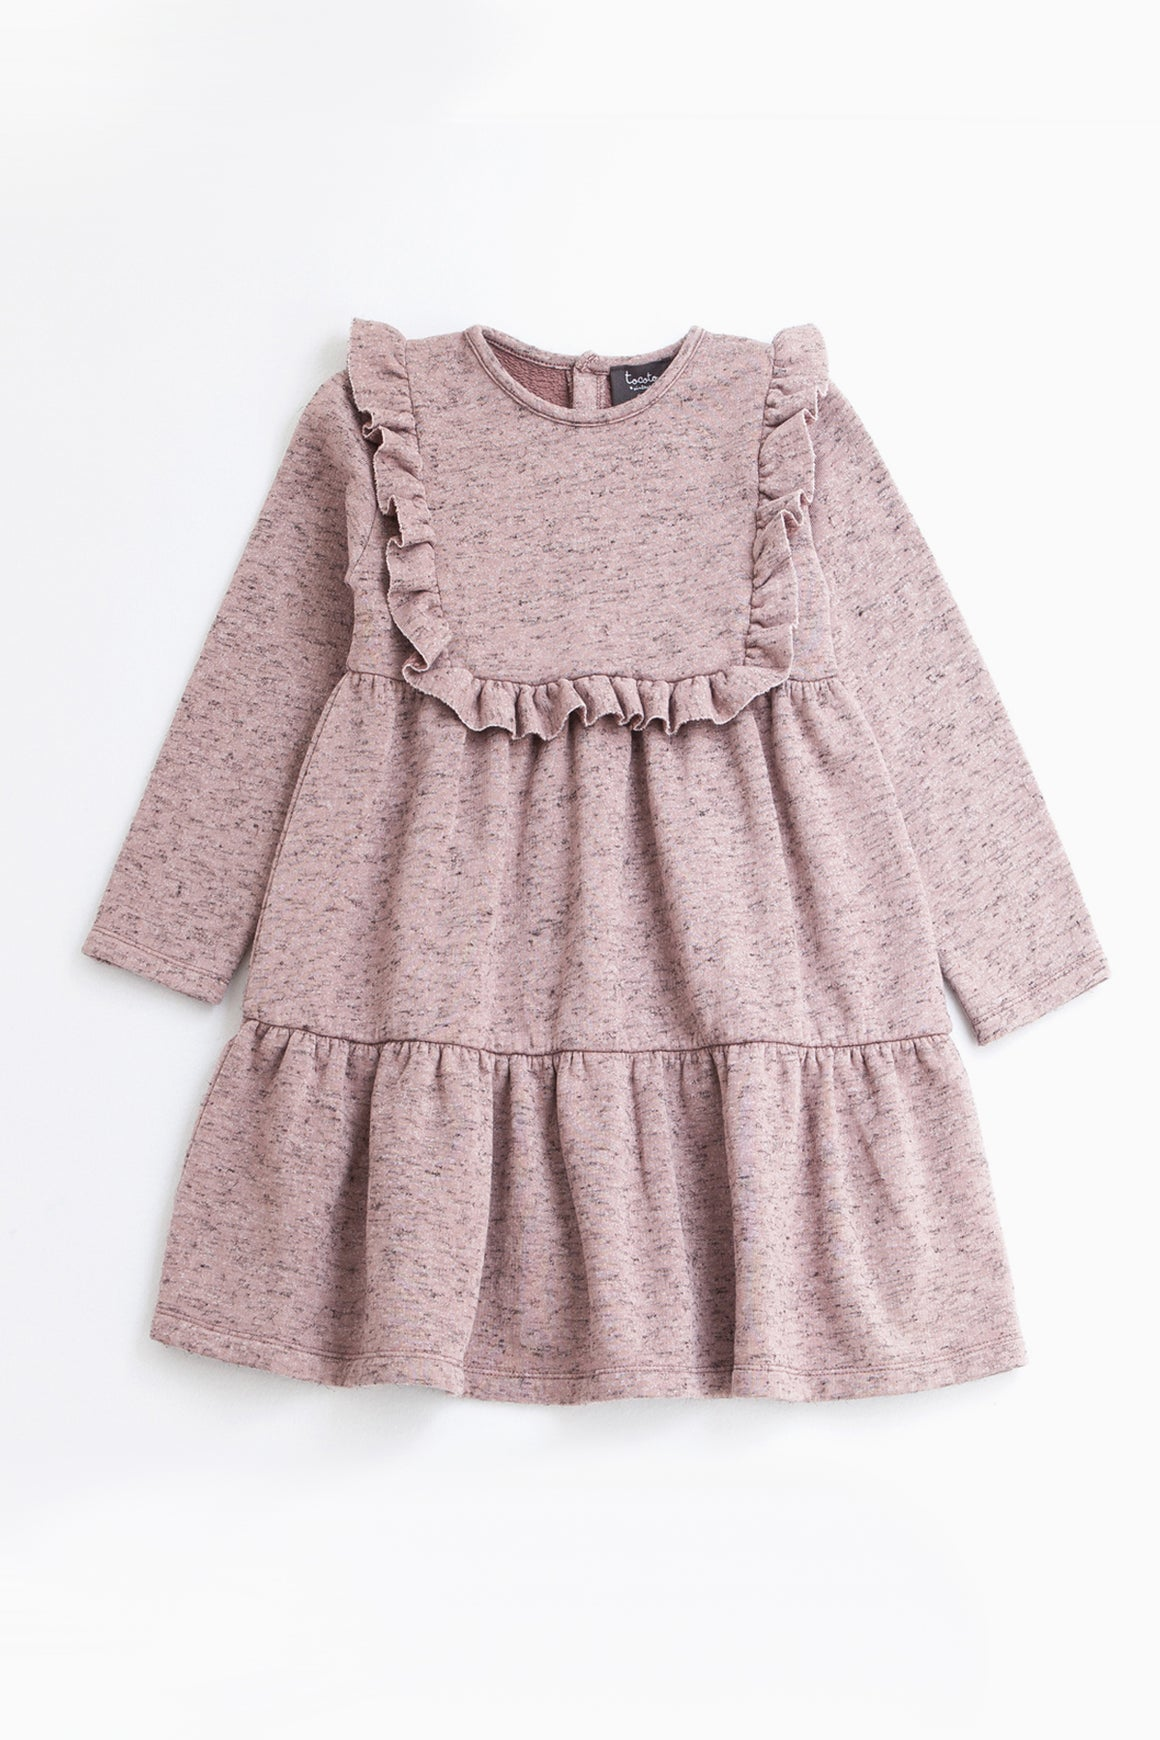 Tocoto Vintage Ruffle Plush Dress - Pink